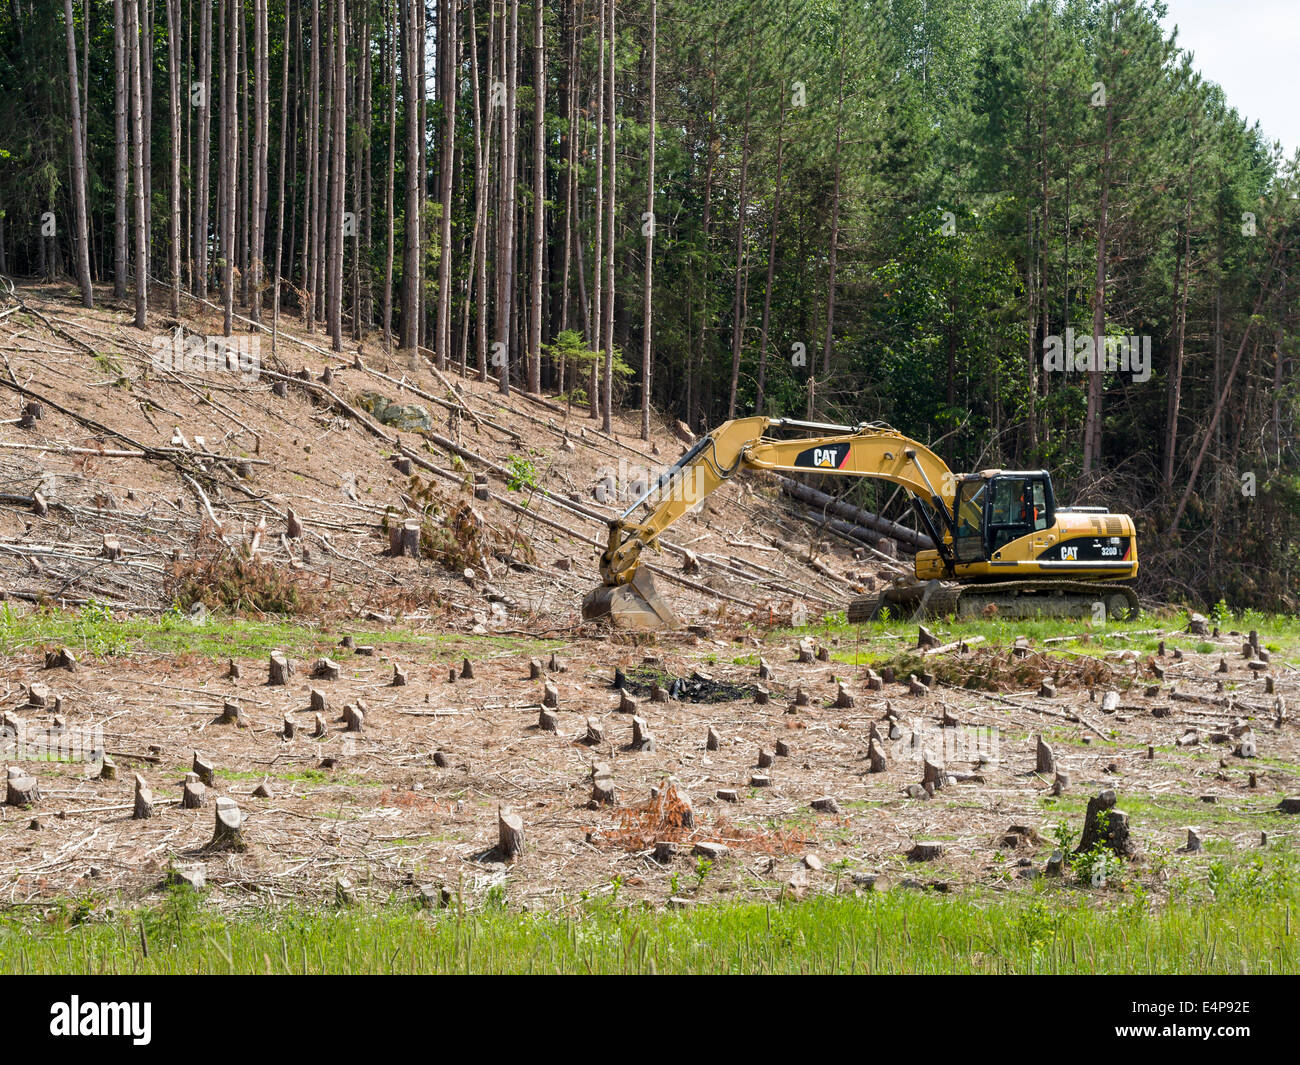 Clearcut Trees with digger. After clearing a large swath of planted forest a earth digger is in place to start digging. Stock Photo